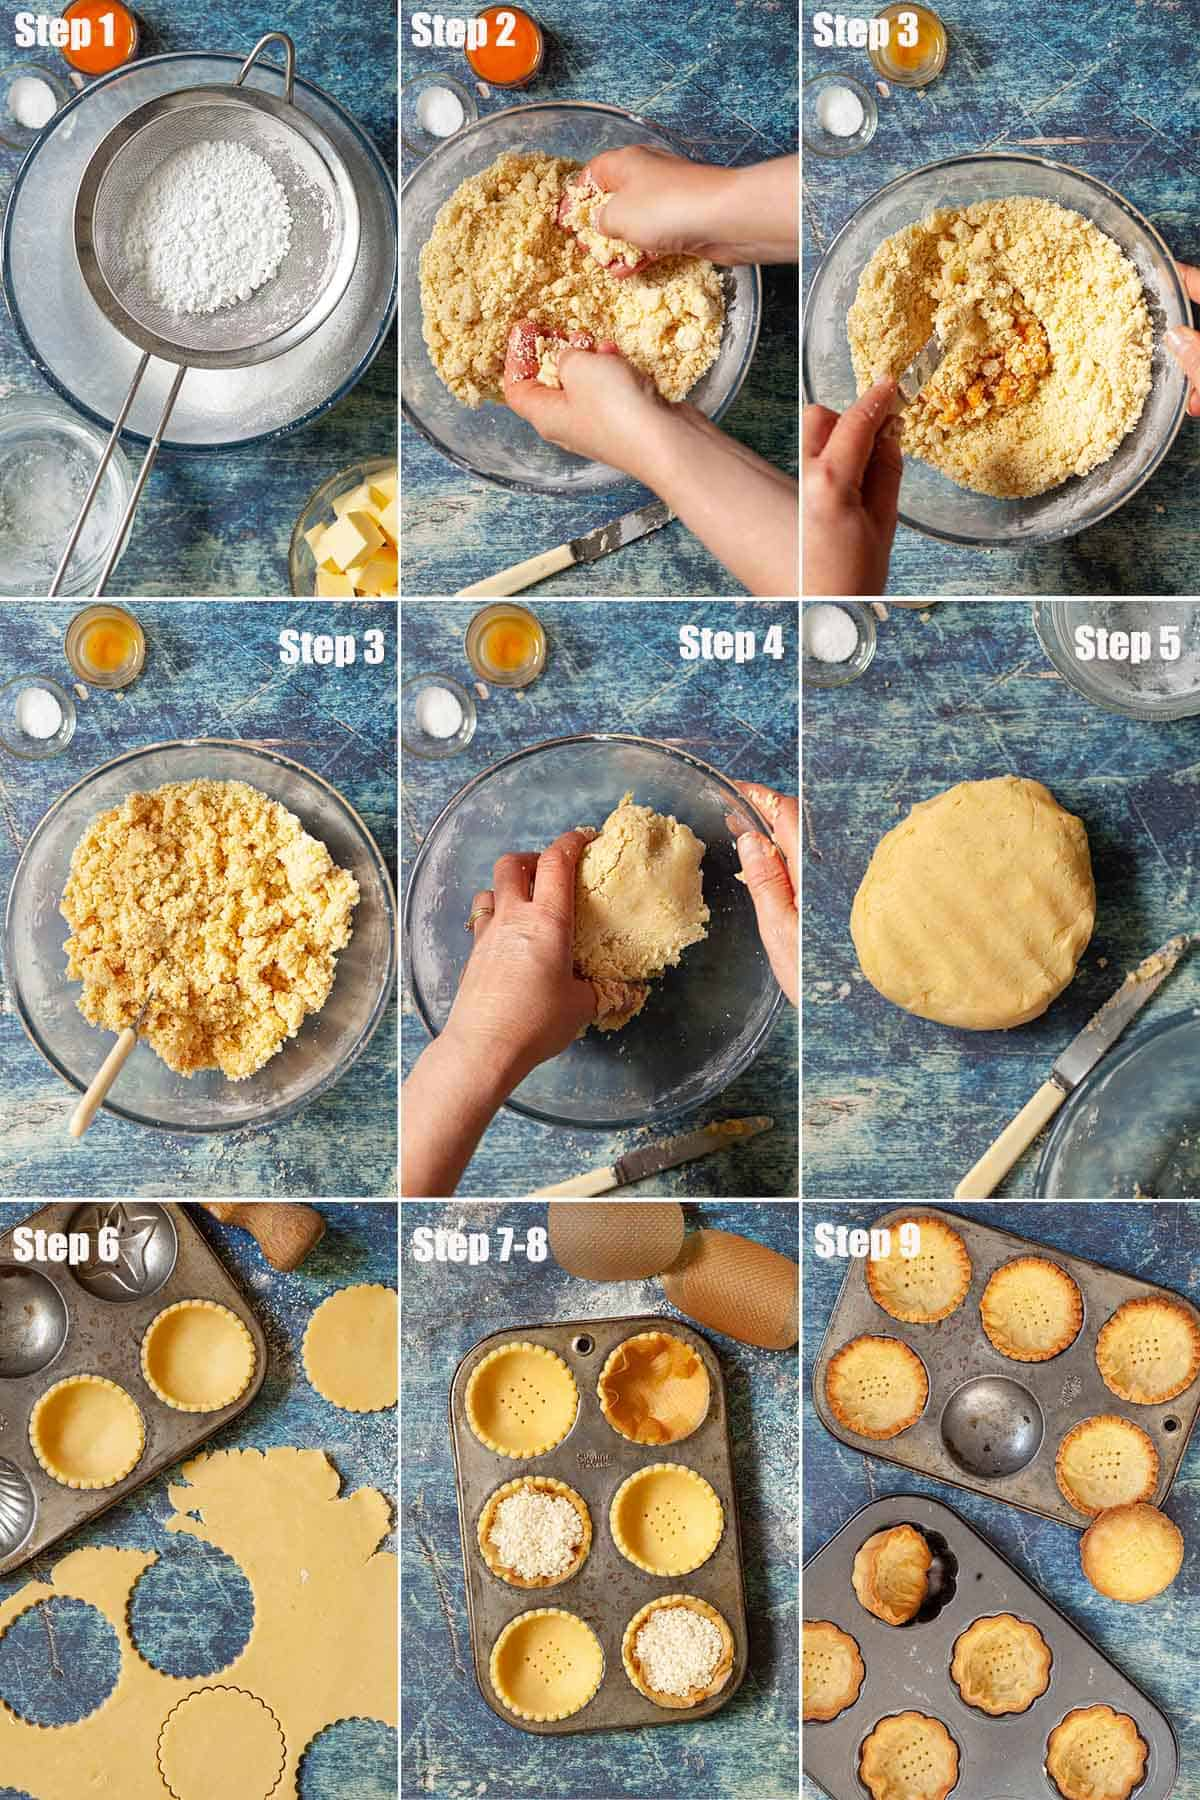 Collage of images showing pastry being made and used to make tart cases.